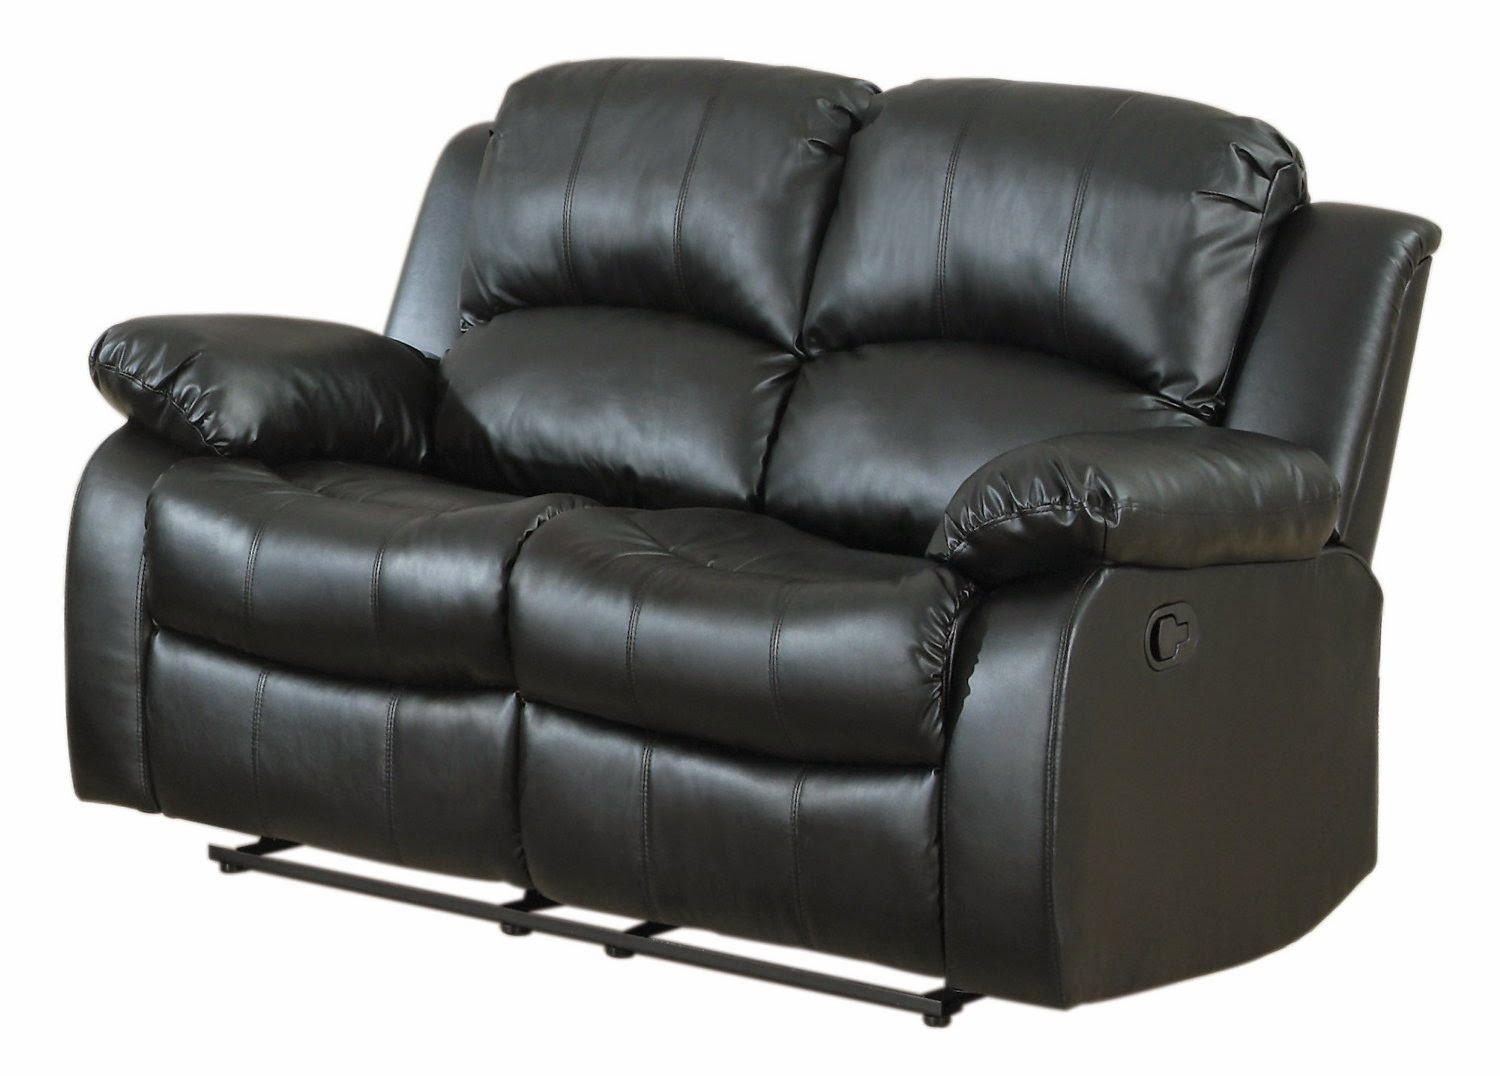 The Best Reclining Leather Sofa Reviews Leather Recliner Sofa Sale Uk